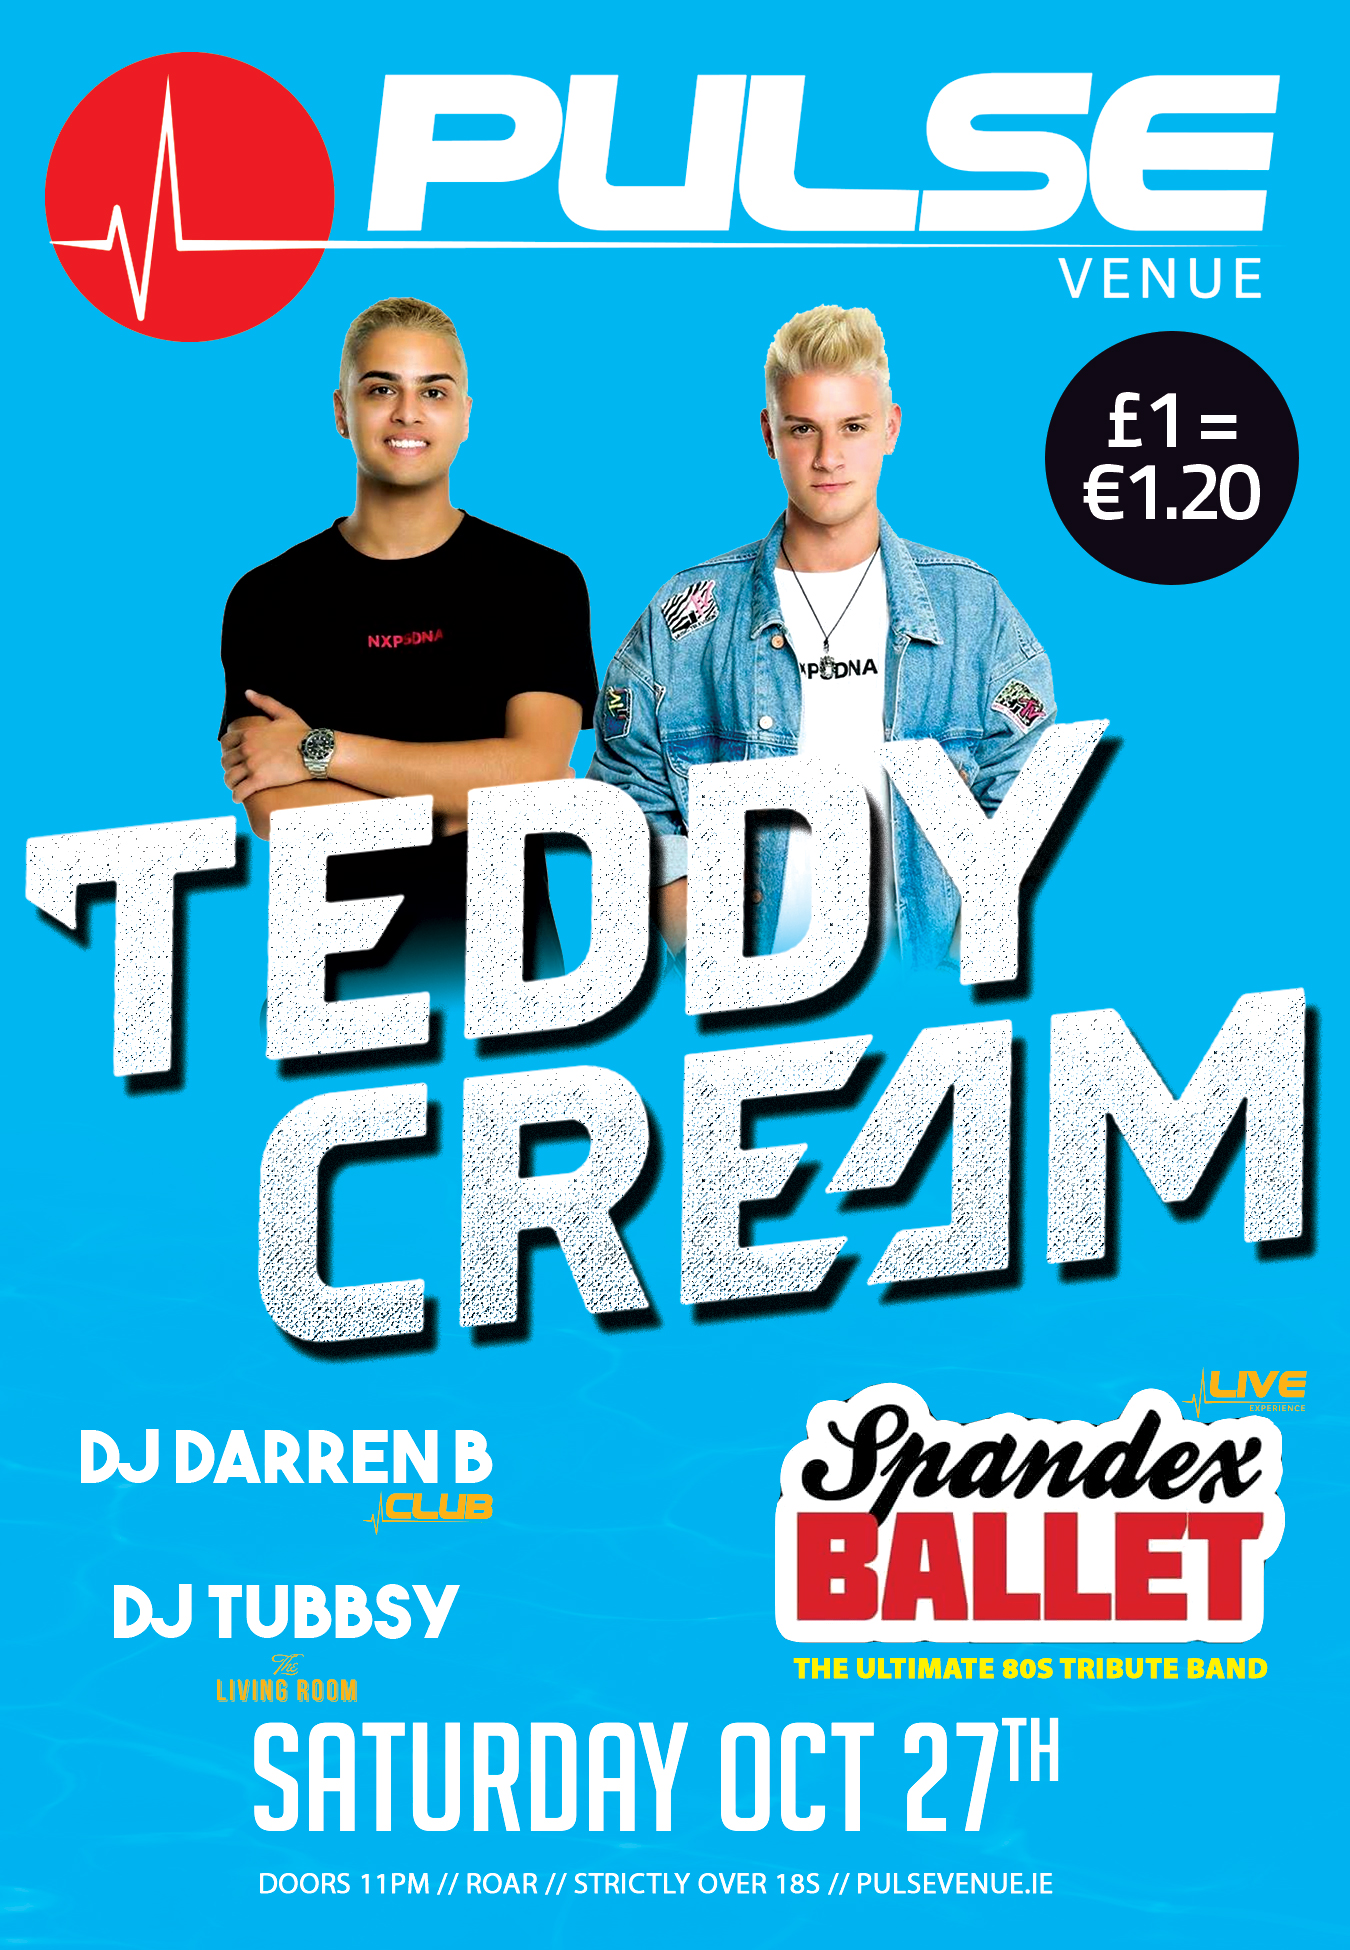 pulse-venue-teddy-cream-marty-mone-darren-b-tubbsy-sat-oct-27-2018.jpg